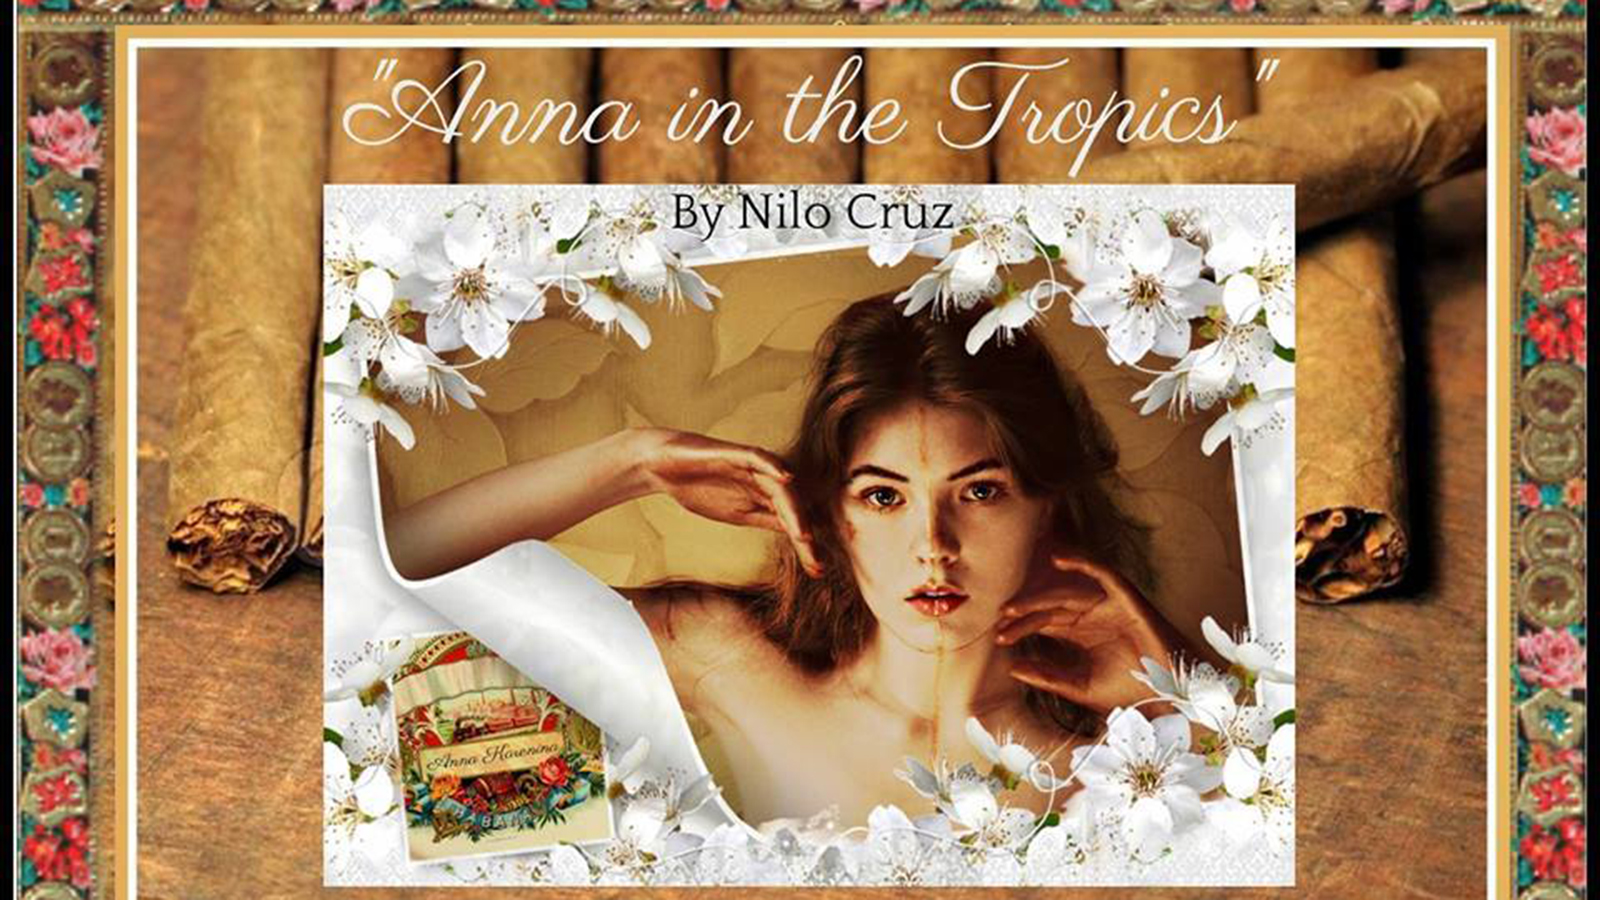 anna in the tropics Anna in the tropics by nilo cruz - act 1, scene 2 summary and analysis.